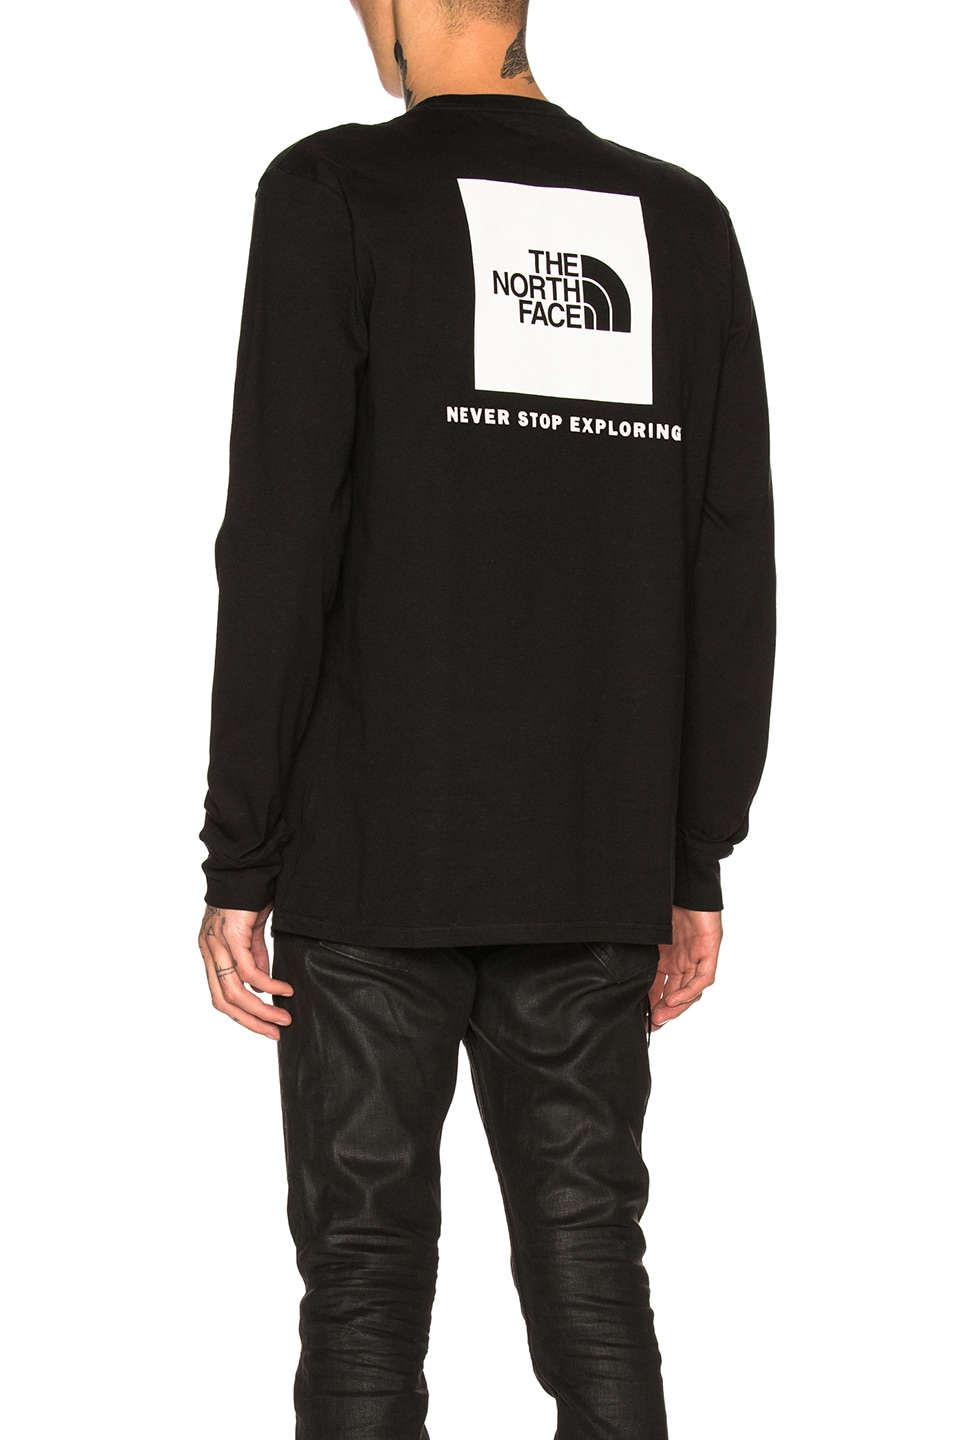 8e3665561 The North Face Long Sleeve Red Box Tee in TNF Black   FWRD